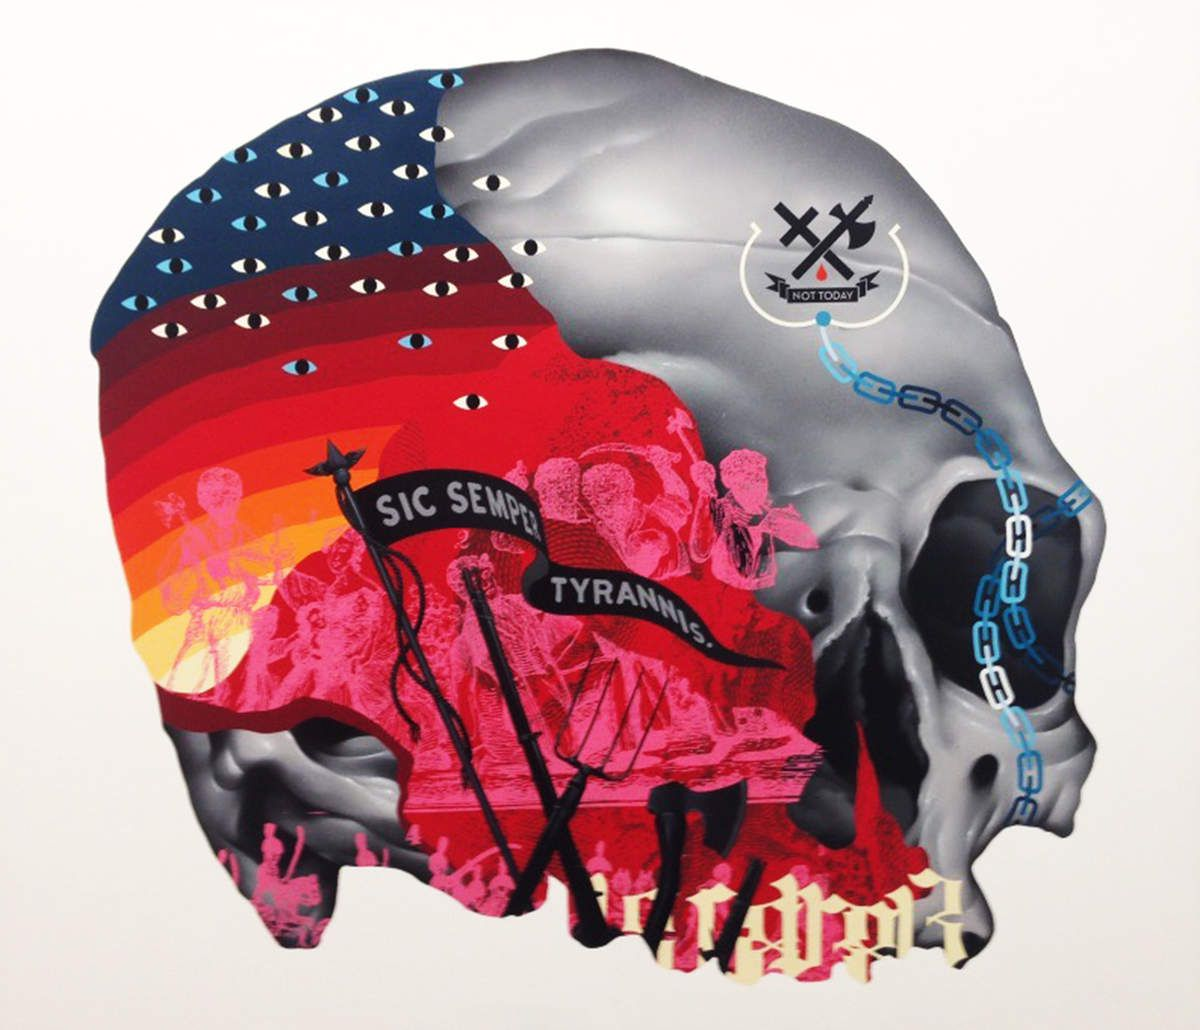 Nat Turner's Rebellion - © Tristan Eaton